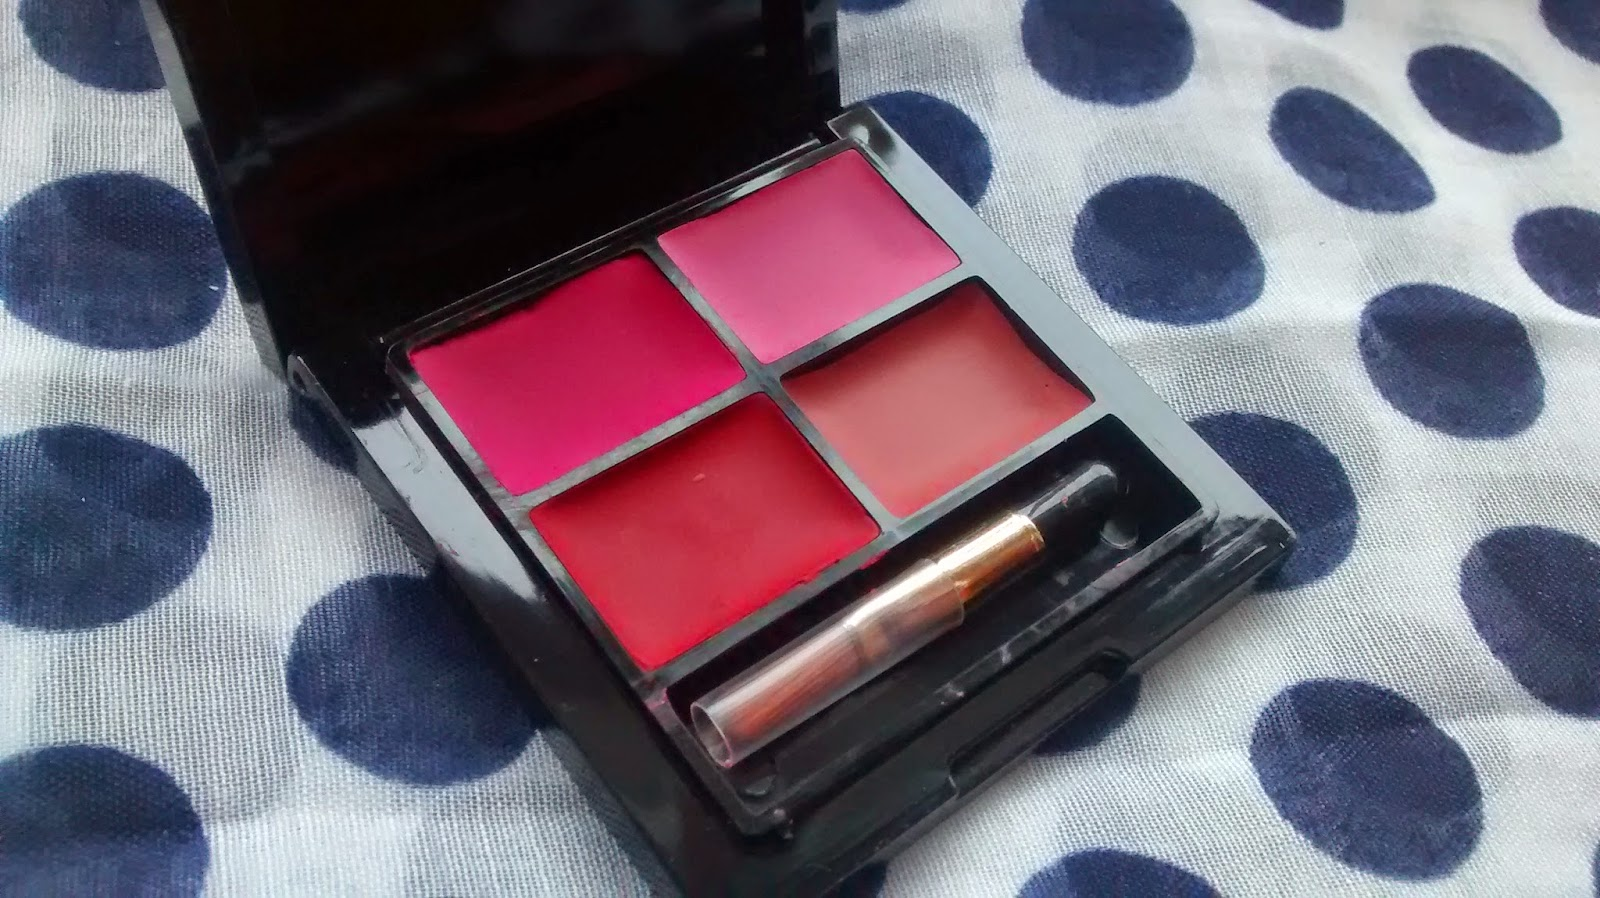 So Susan Rose Quartet Lip & Cheek Palette